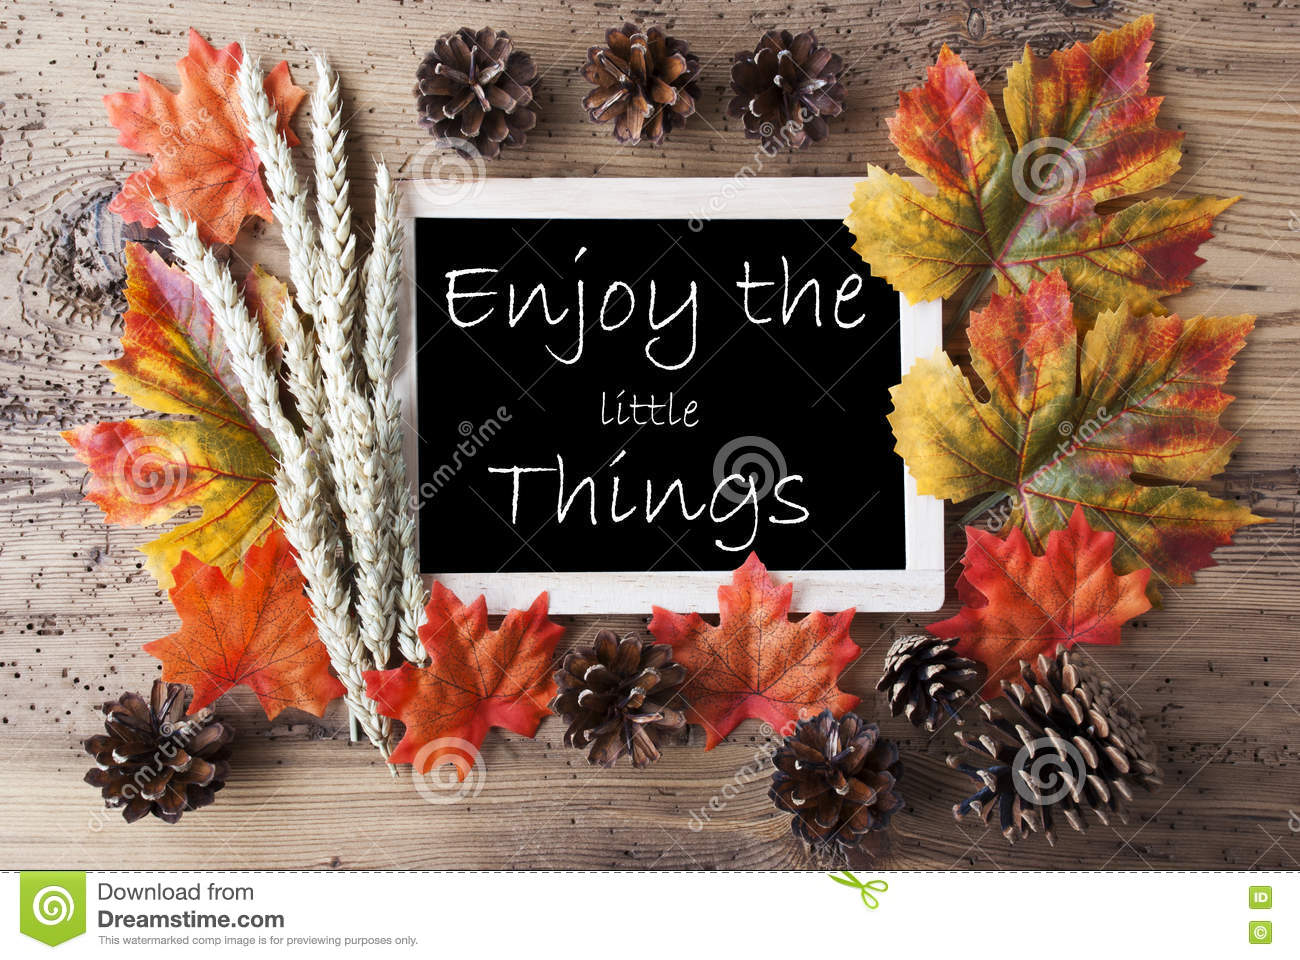 Marvelous Download Chalkboard With Autumn Decoration, Quote Enjoy The Little Things  Stock Photo   Image Of